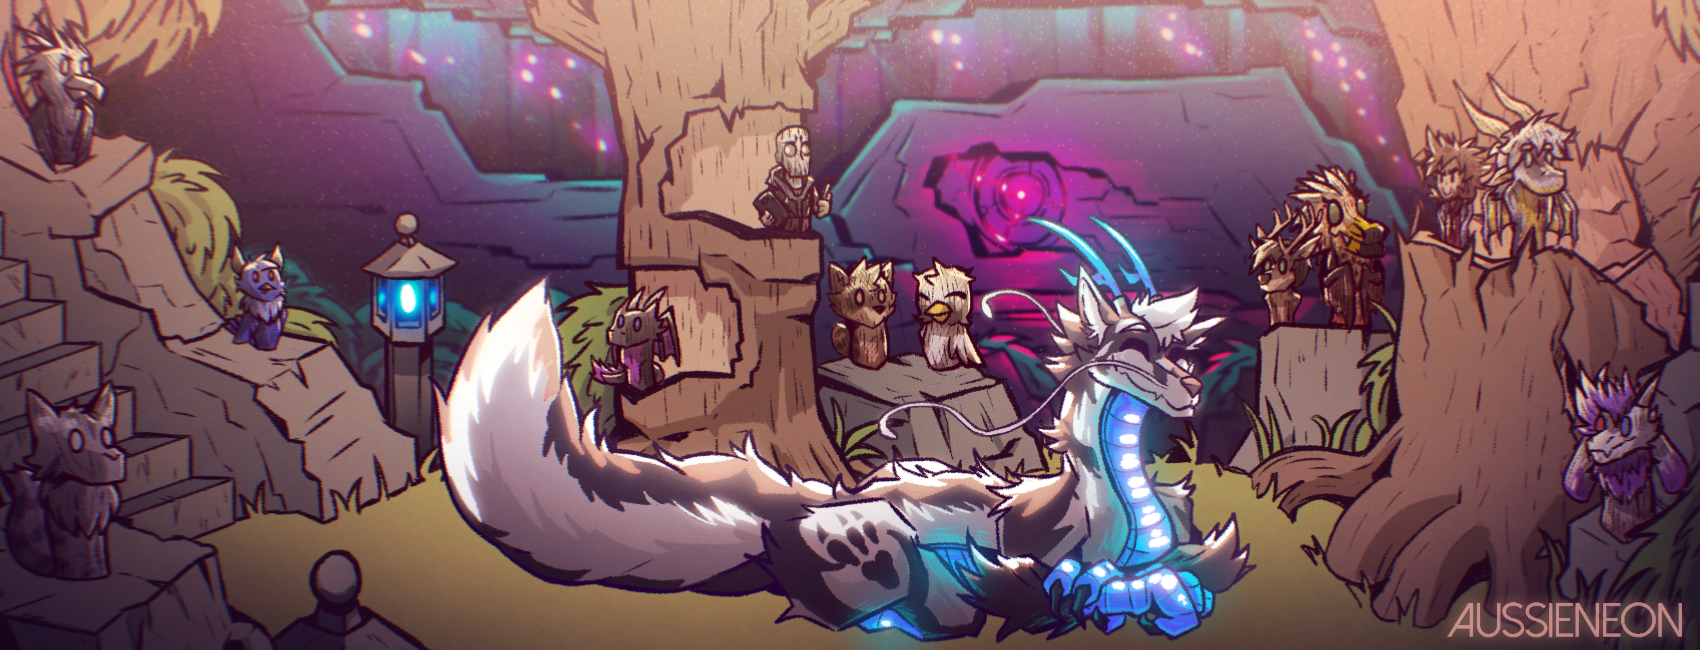 Forest of Solace [Commission]